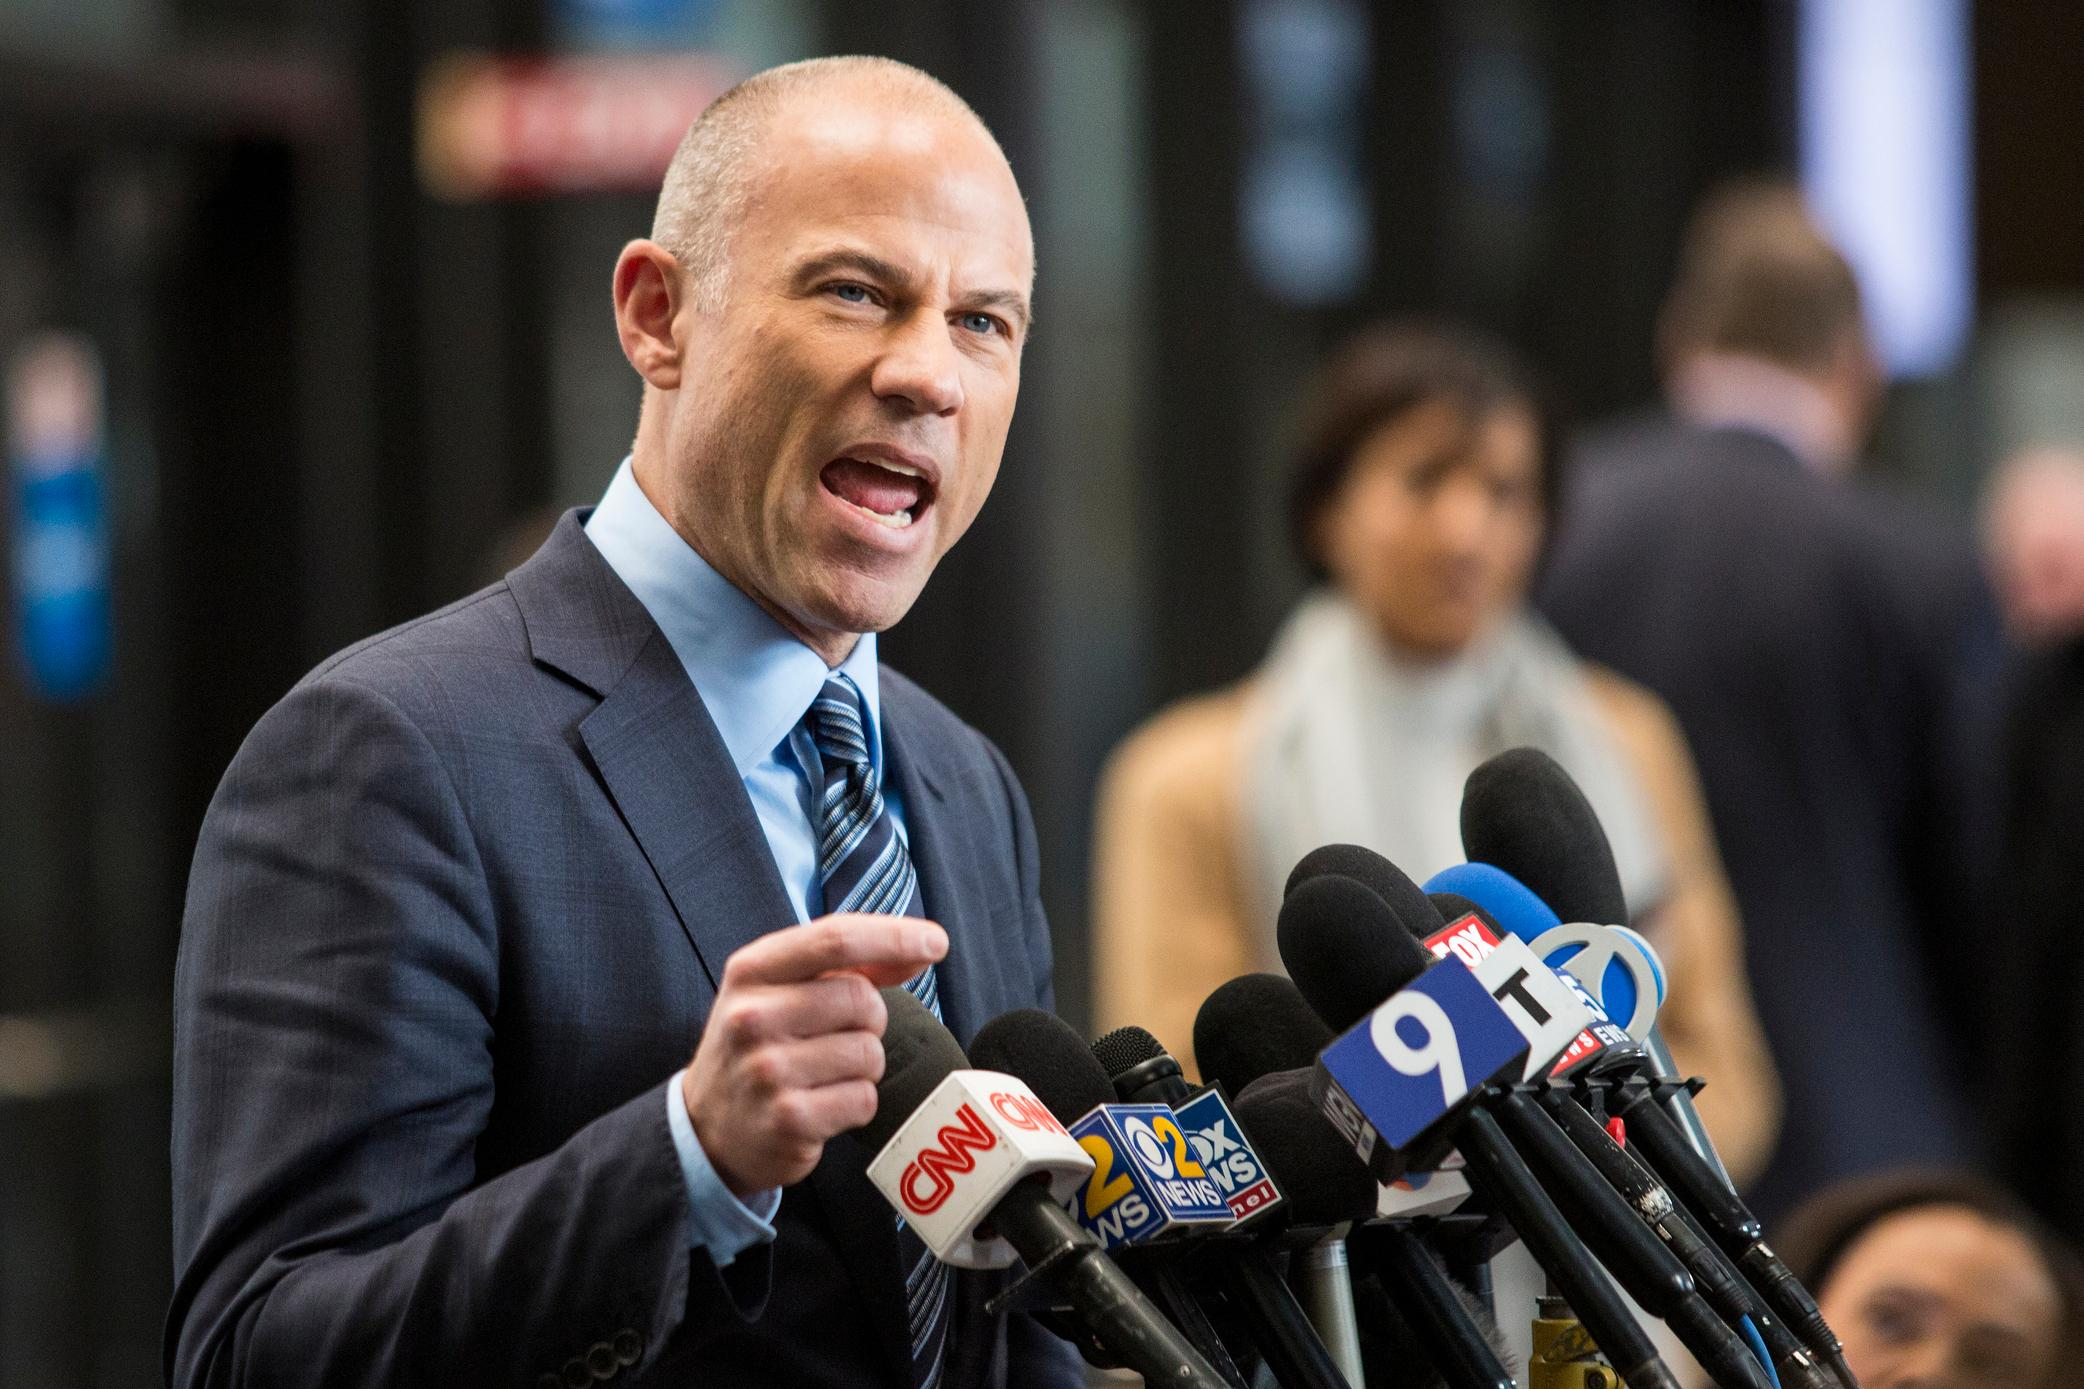 Attorney Michael Avenatti, who is representing an alleged R. Kelly victim, speaks to reporters at the Leighton Criminal Courthouse in Chicago after the R&B singer entered a not guilty plea to all 10 counts of aggravated criminal sexual abuse, Monday morning, Feb. 25, 2019. (Ashlee Rezin/Chicago Sun-Times via AP)